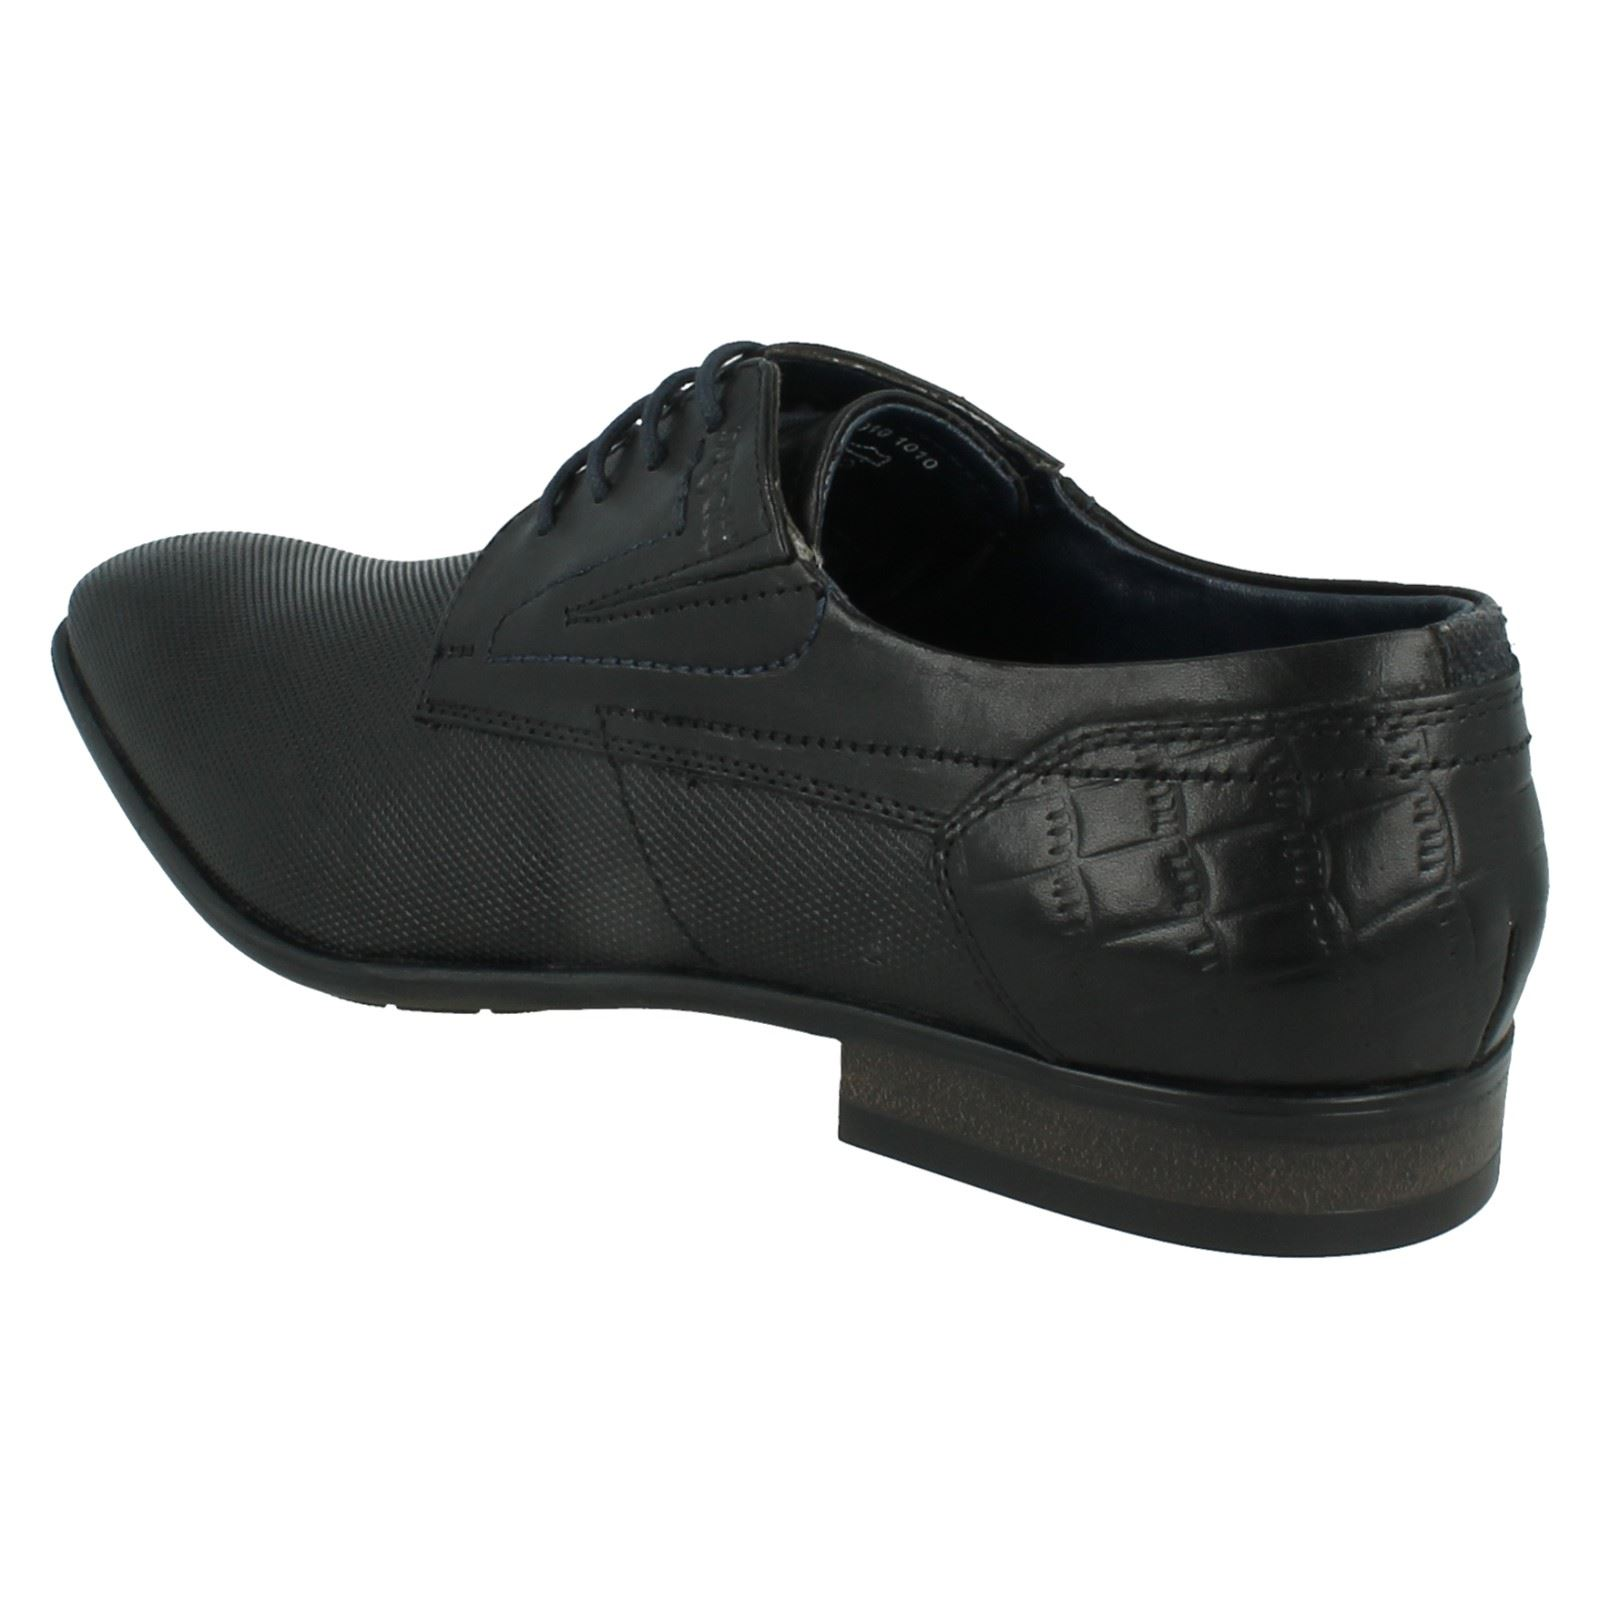 Man's/Woman's Mens Bugatti Shoes price 311-18801-1010-1000 Reasonable price Shoes Modern and stylish fashion Popular tide shoes f5f273